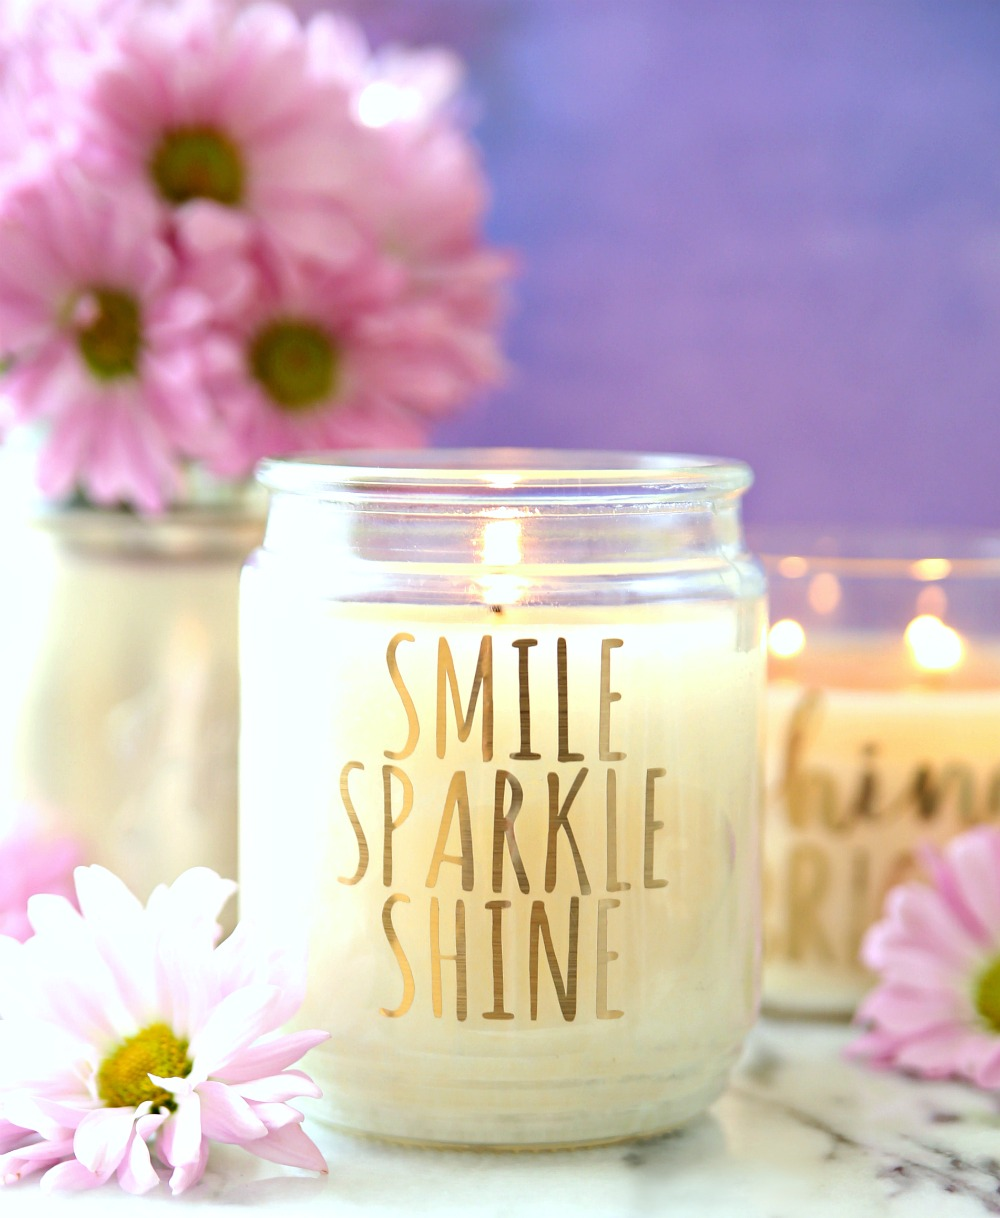 Smile Sparkle Shine Candle - Easy DIY Inspirational candles make a fun gift and great home decor